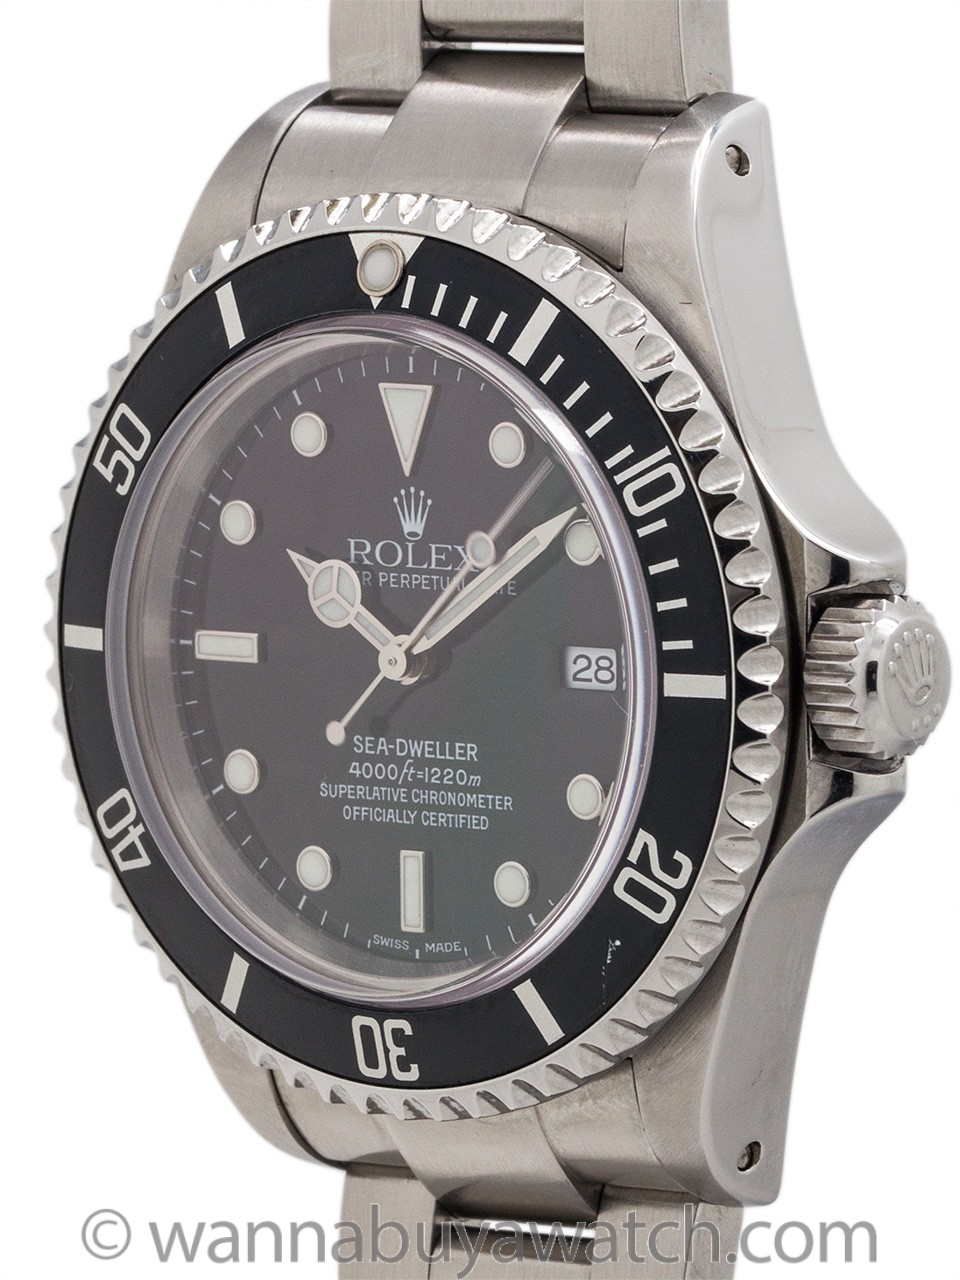 Rolex Sea-Dweller ref 16600 Stainless circa 2002